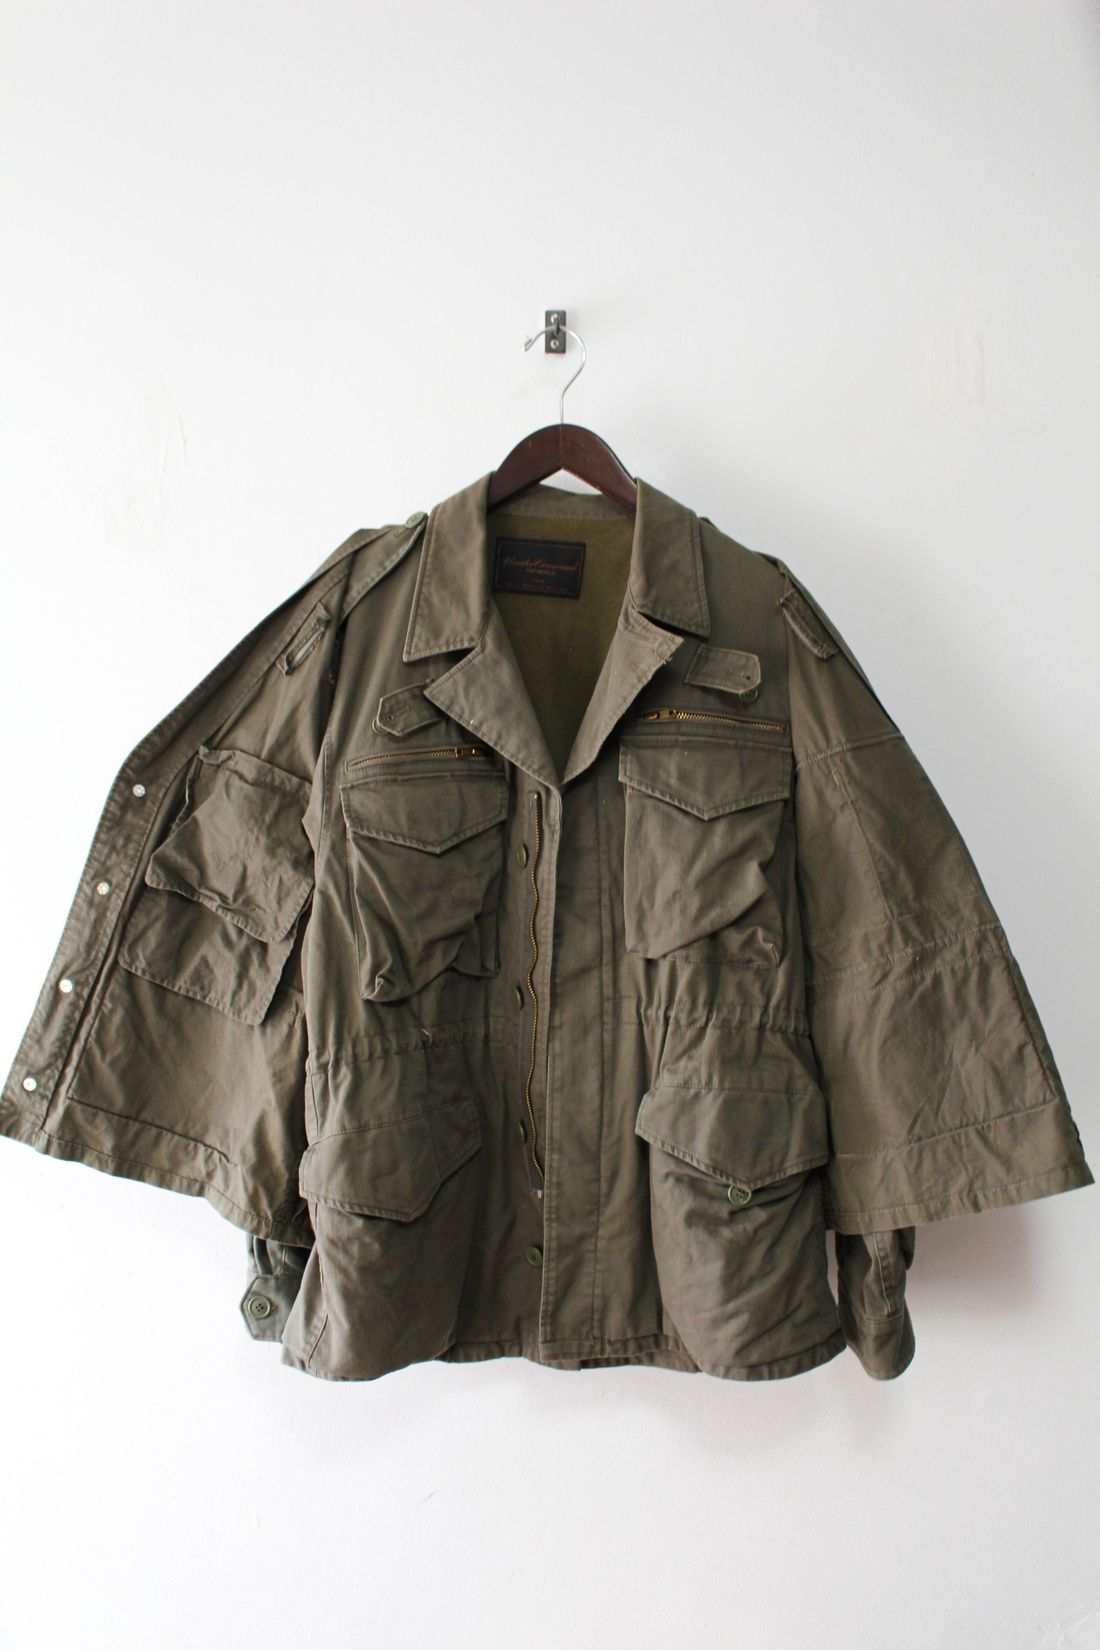 faa73cf06cee Undercover M51 Field Military Jacket + Ripstop Utility Vest Size M  582 -  Grailed